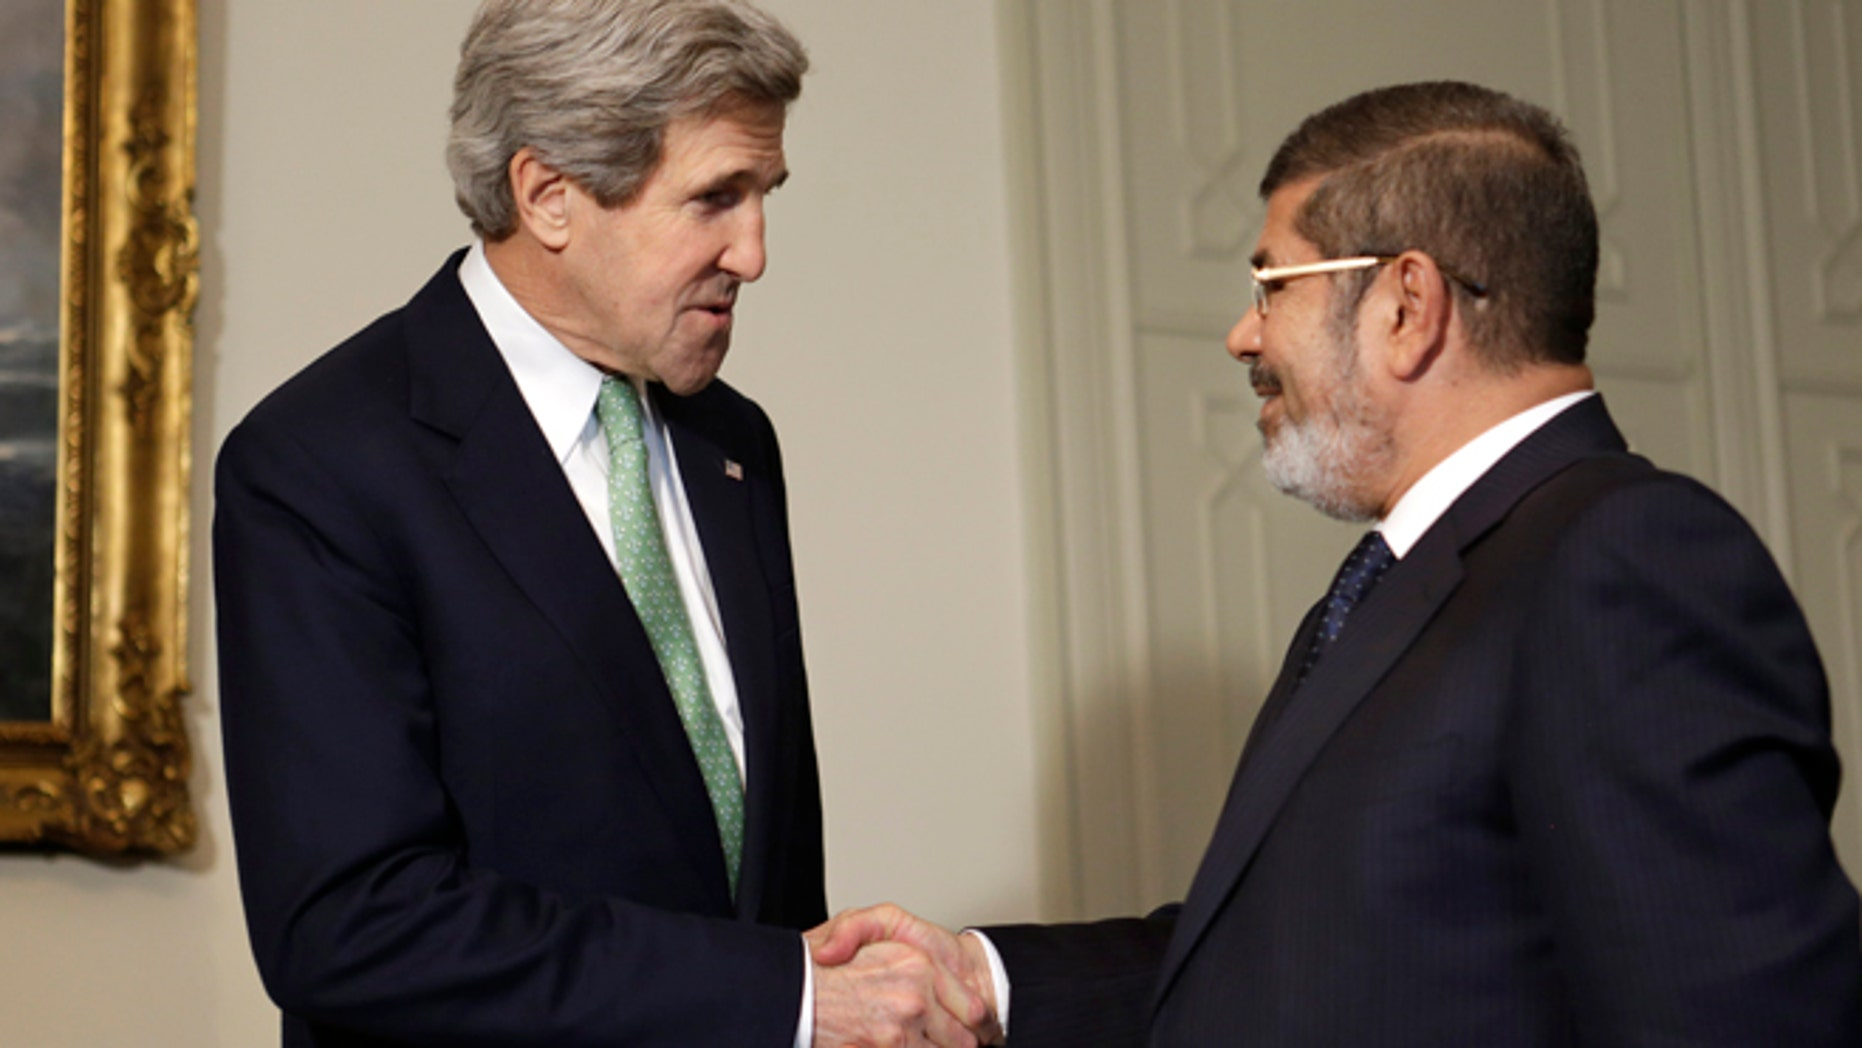 March 3, 2013: U.S. Secretary of State John Kerry, left, shakes hands with Egyptian President Mohamed Morsi at the Presidential Palace in Cairo, Egypt. U.S. Secretary of State John Kerry met with Egypt's president Sunday, wrapping up a visit to the deeply divided country with an appeal for unity and reform. The U.S. is deeply concerned that continued instability in Egypt will have broader consequences in a region already rocked by unrest.